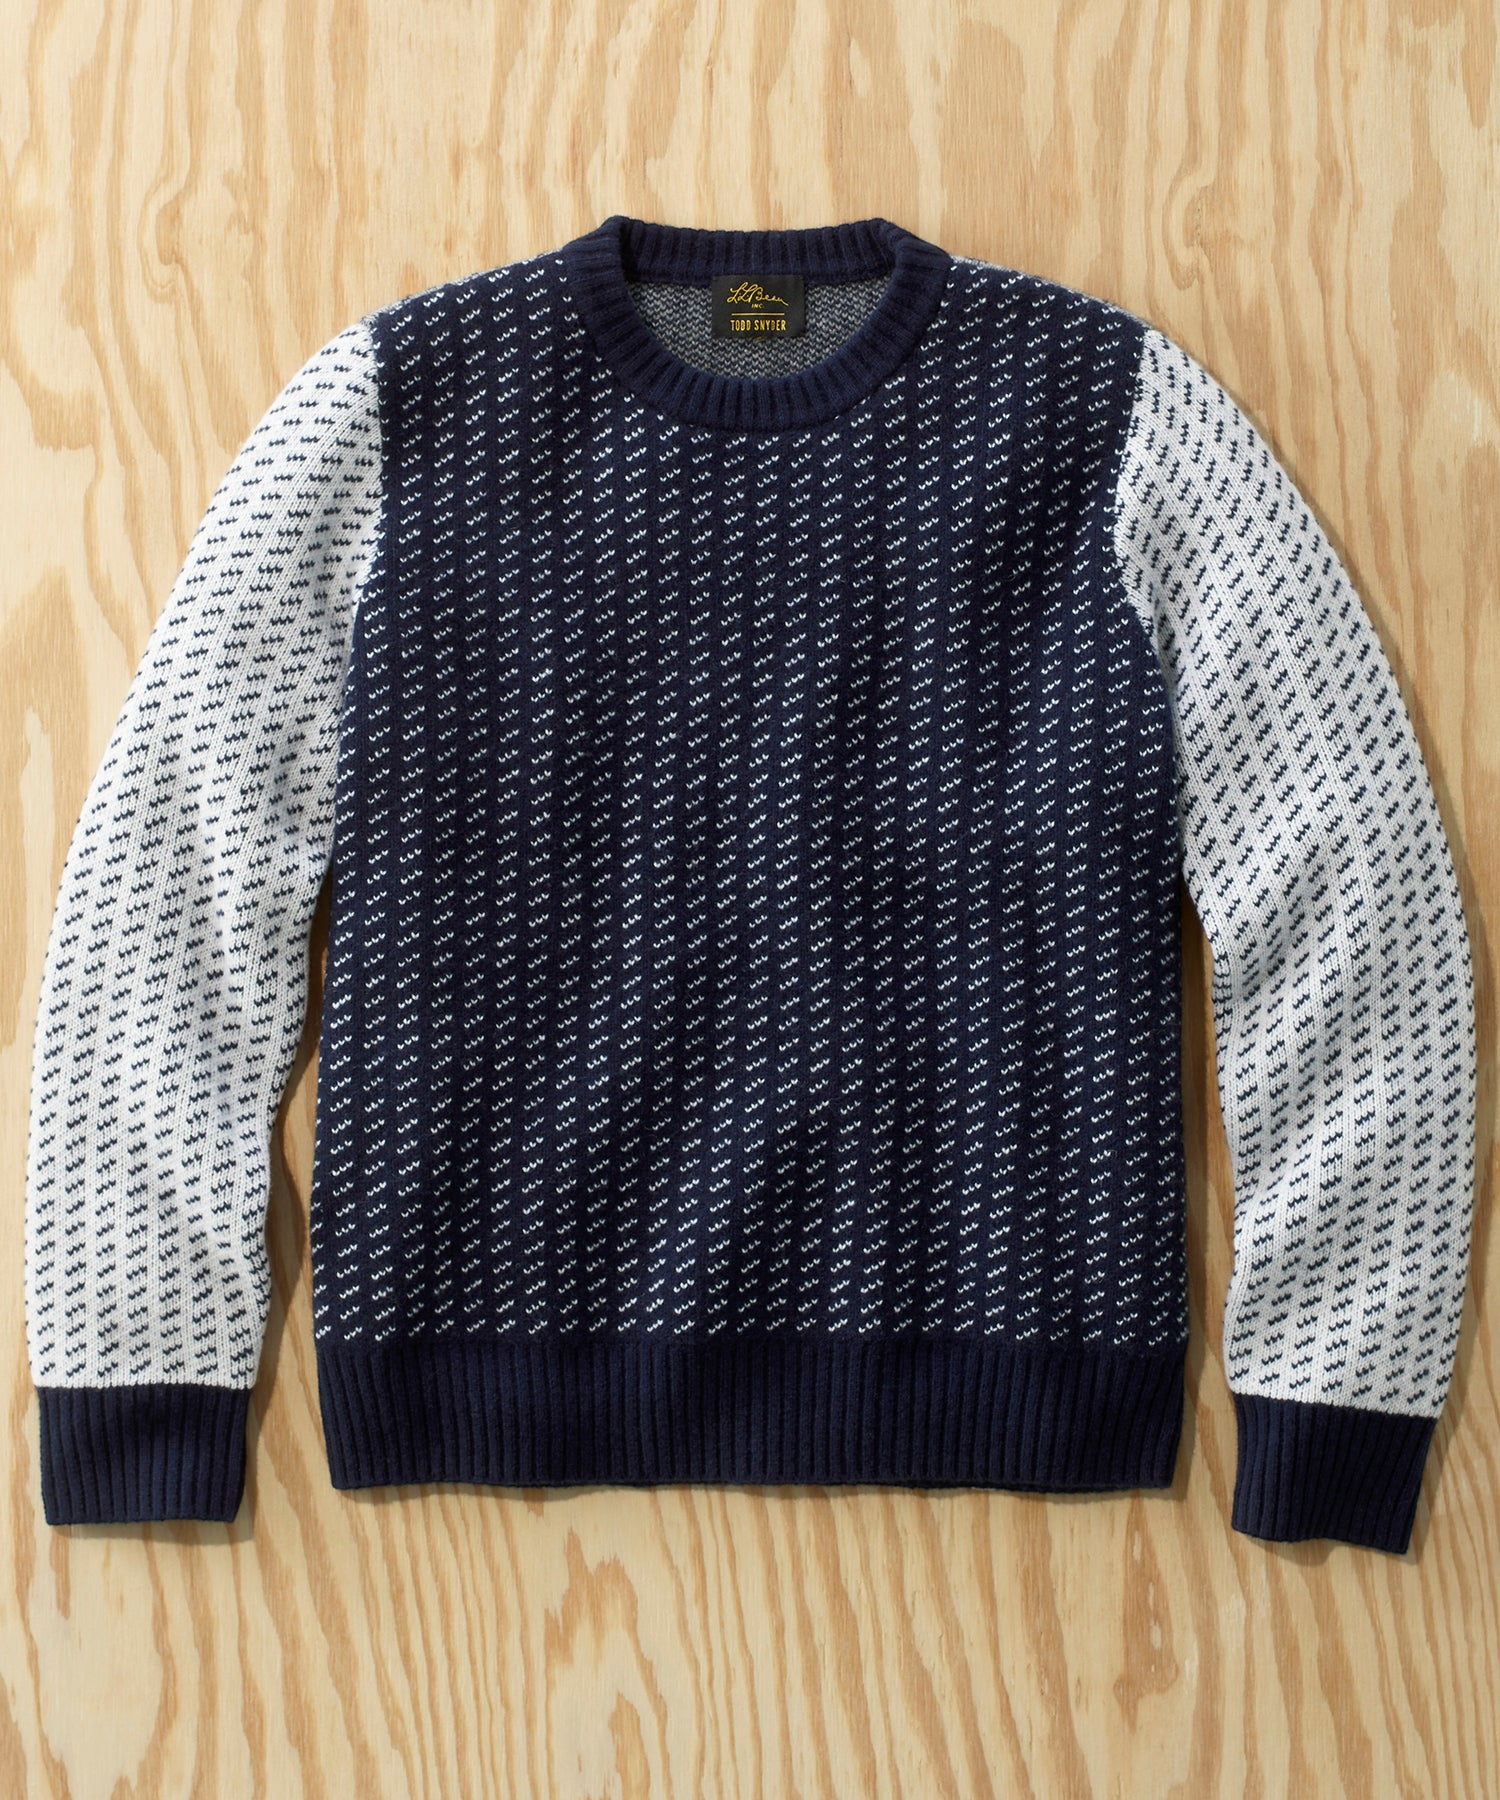 L.L.Bean x Todd Snyder Pullover Sweater in Colorblock Navy